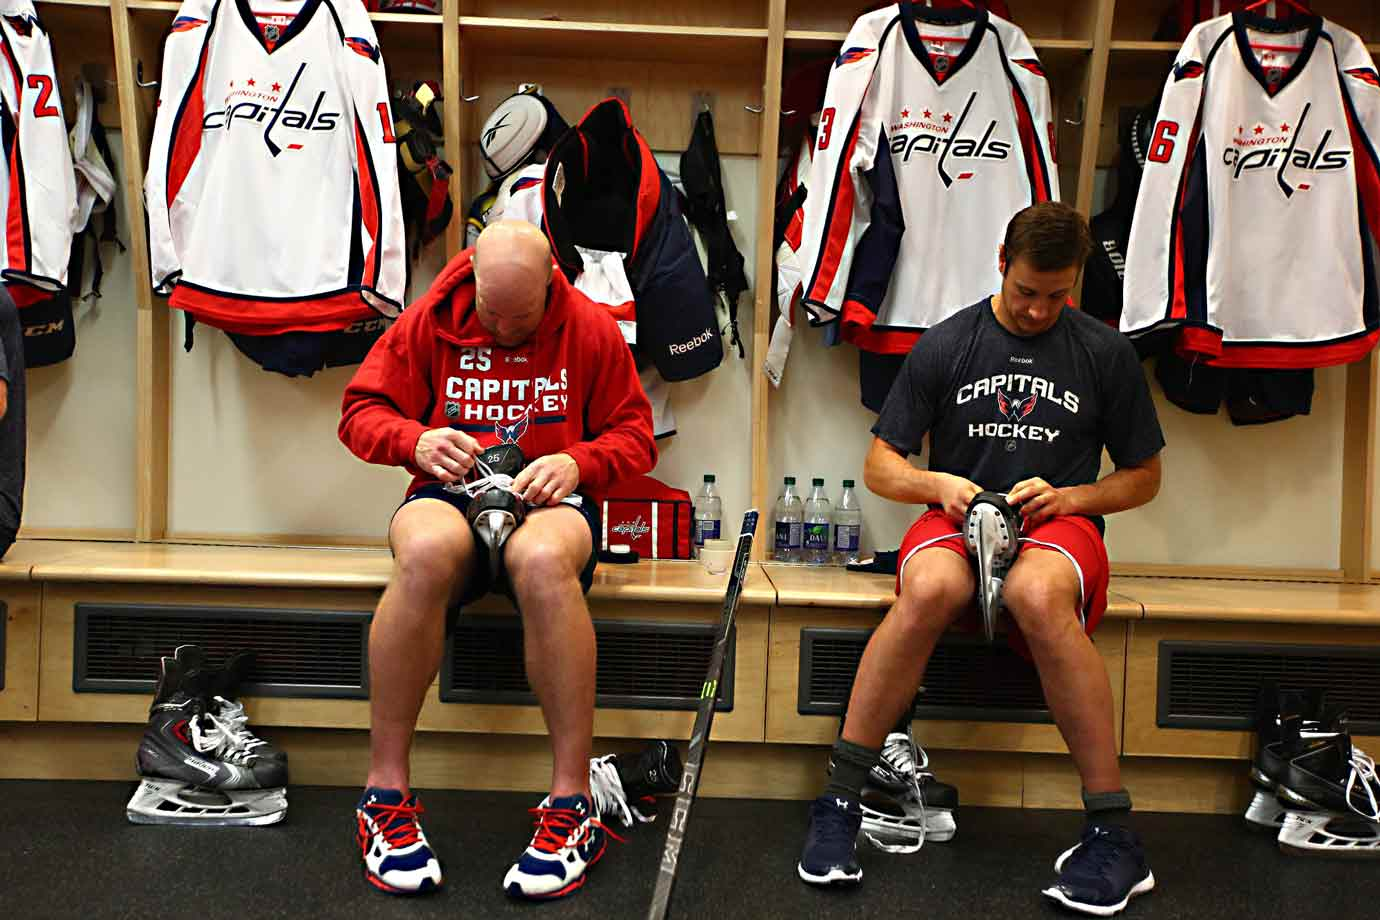 By 6 p.m. Jay Beagle and Tom Wilson are gearing up for the night's action.